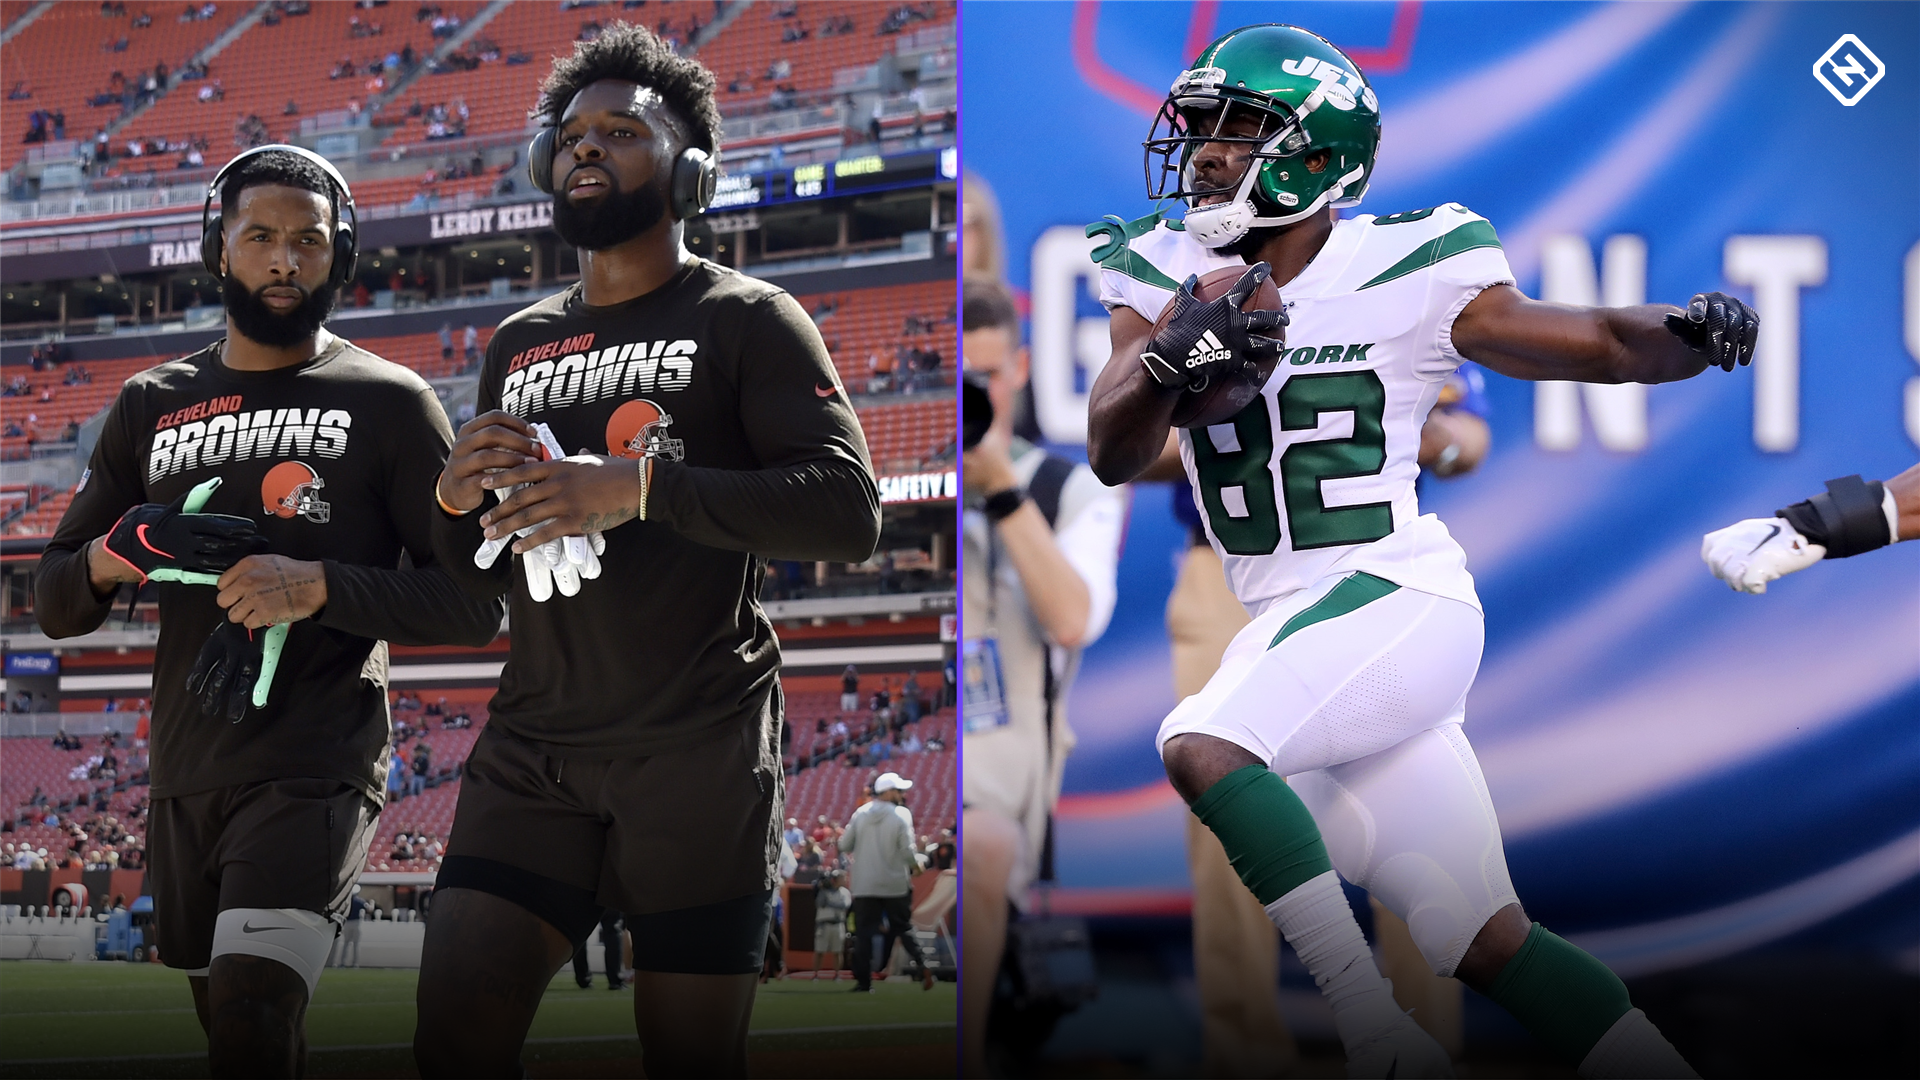 DraftKings Week 2 Monday Night Showdown: Picks, advice for Browns-Jets NFL DFS